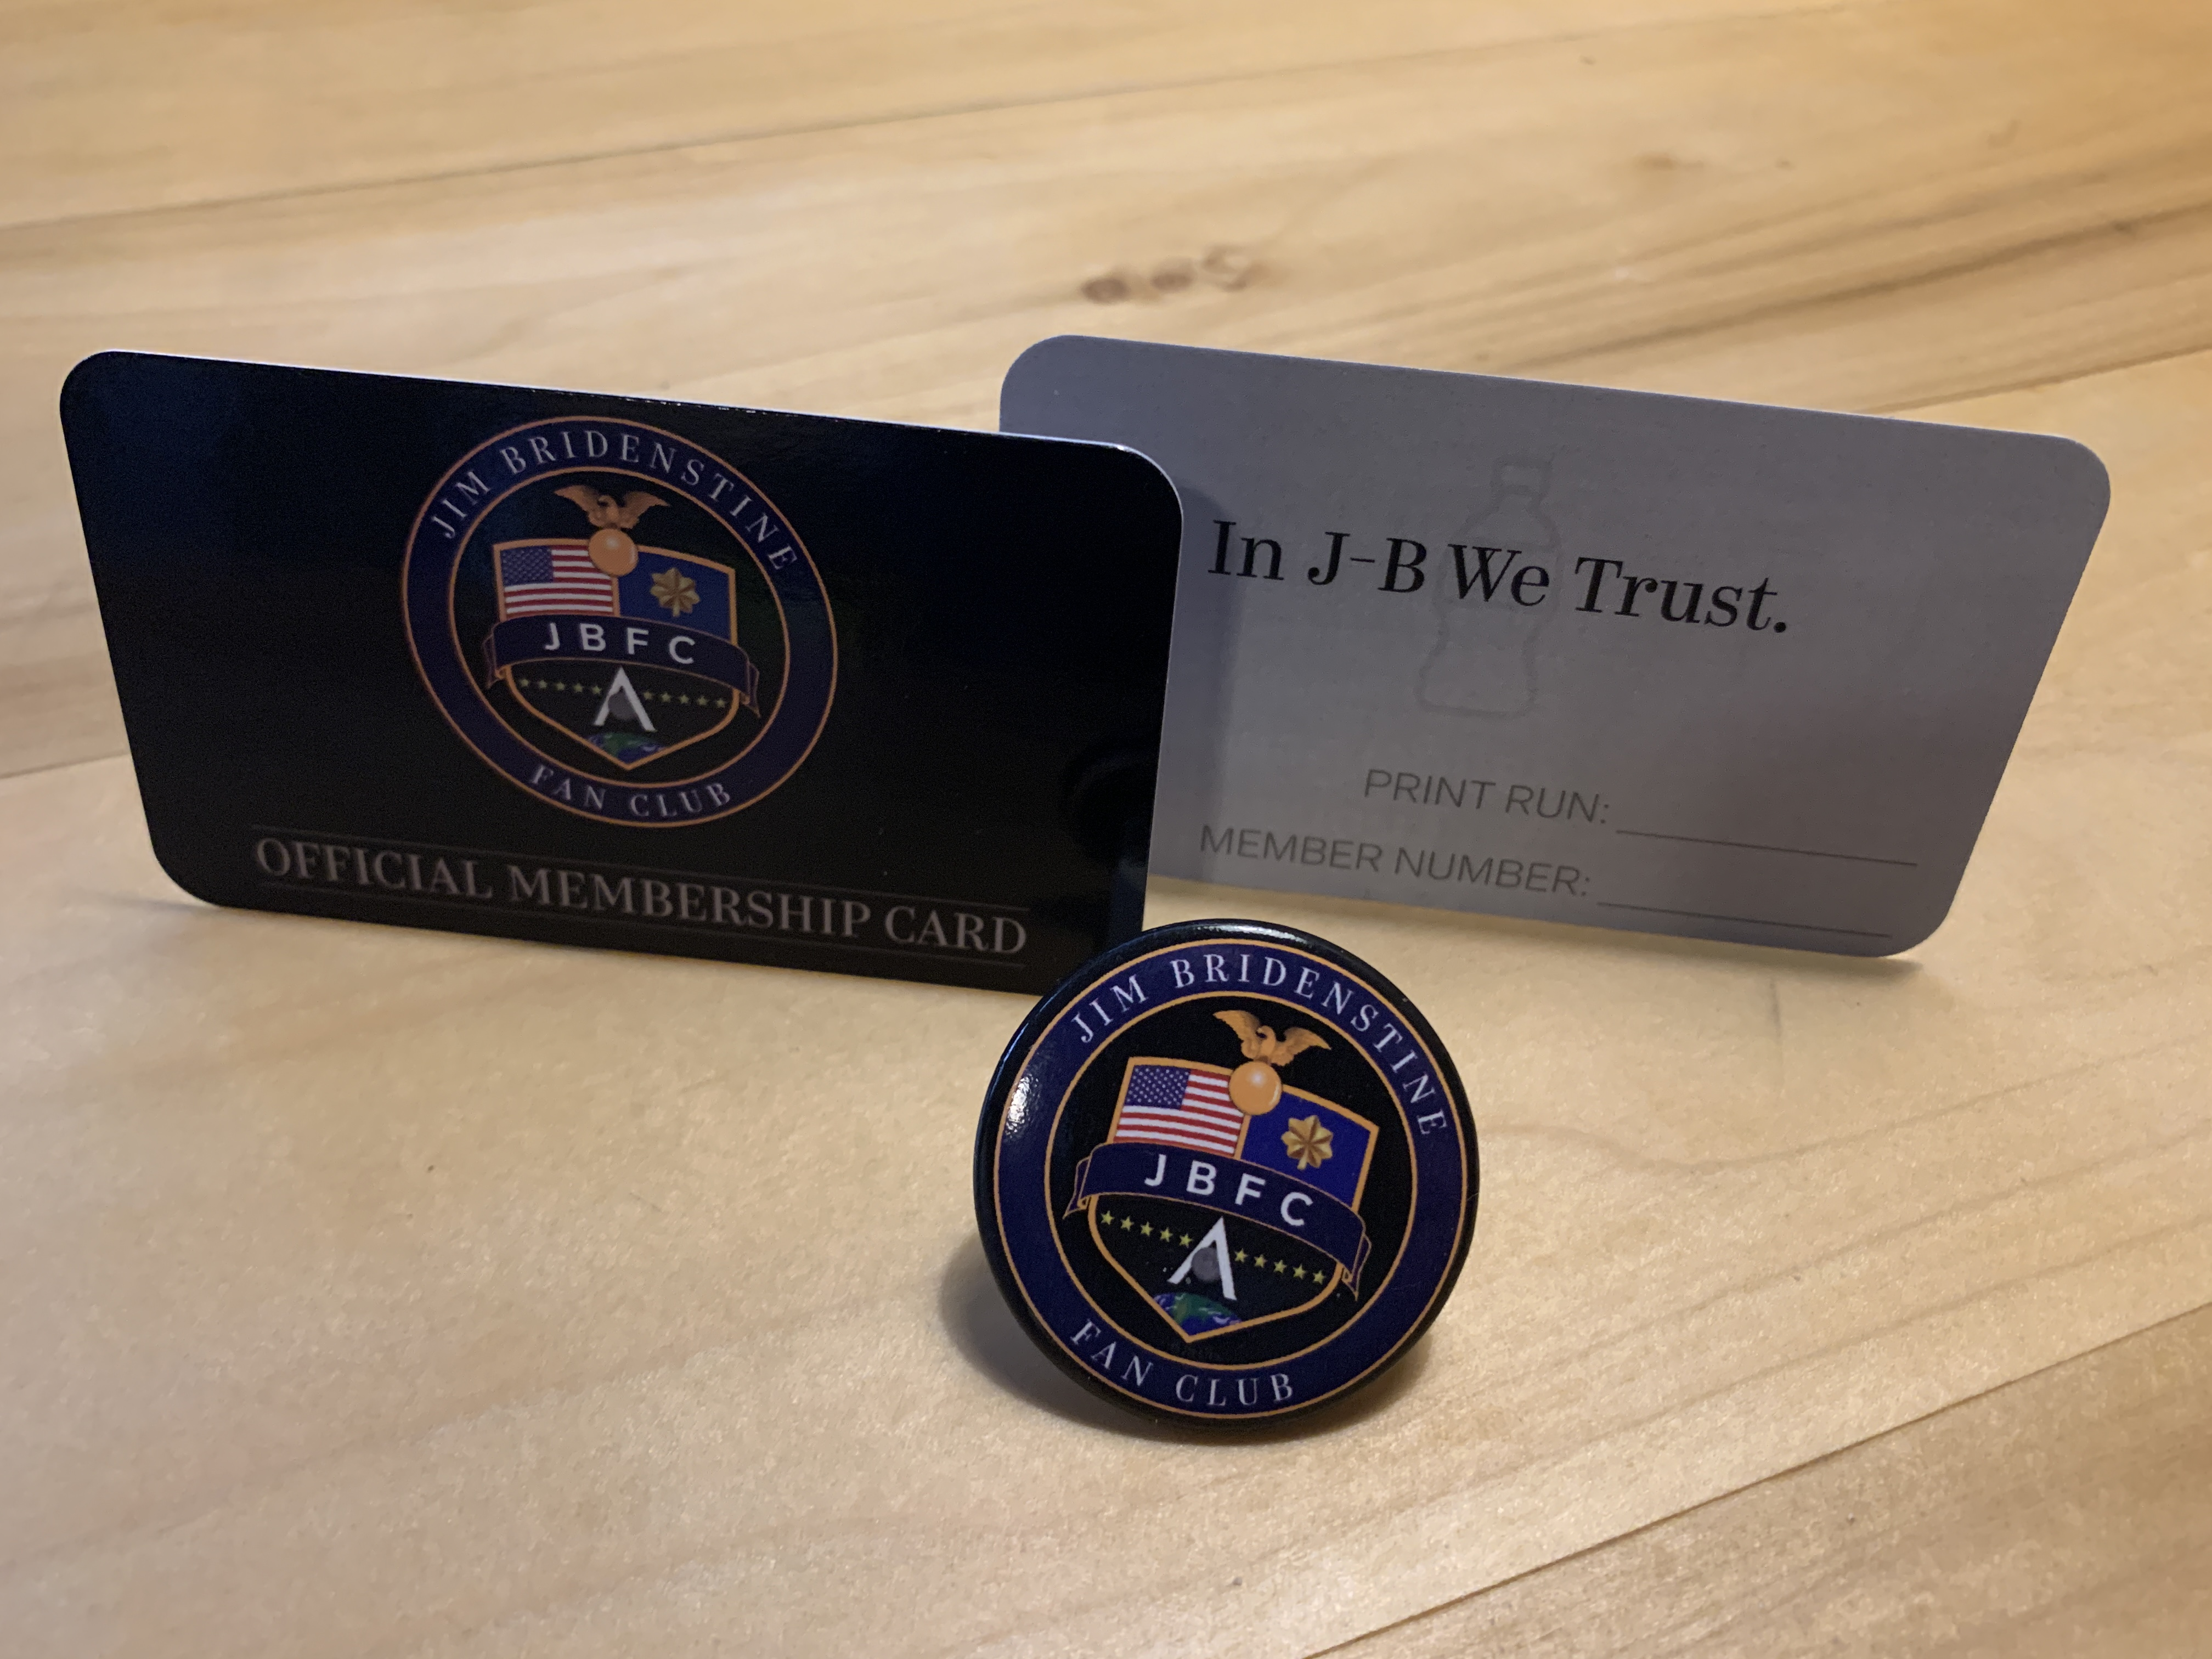 Jim Bridenstine Fan Club Pin and Membership Card